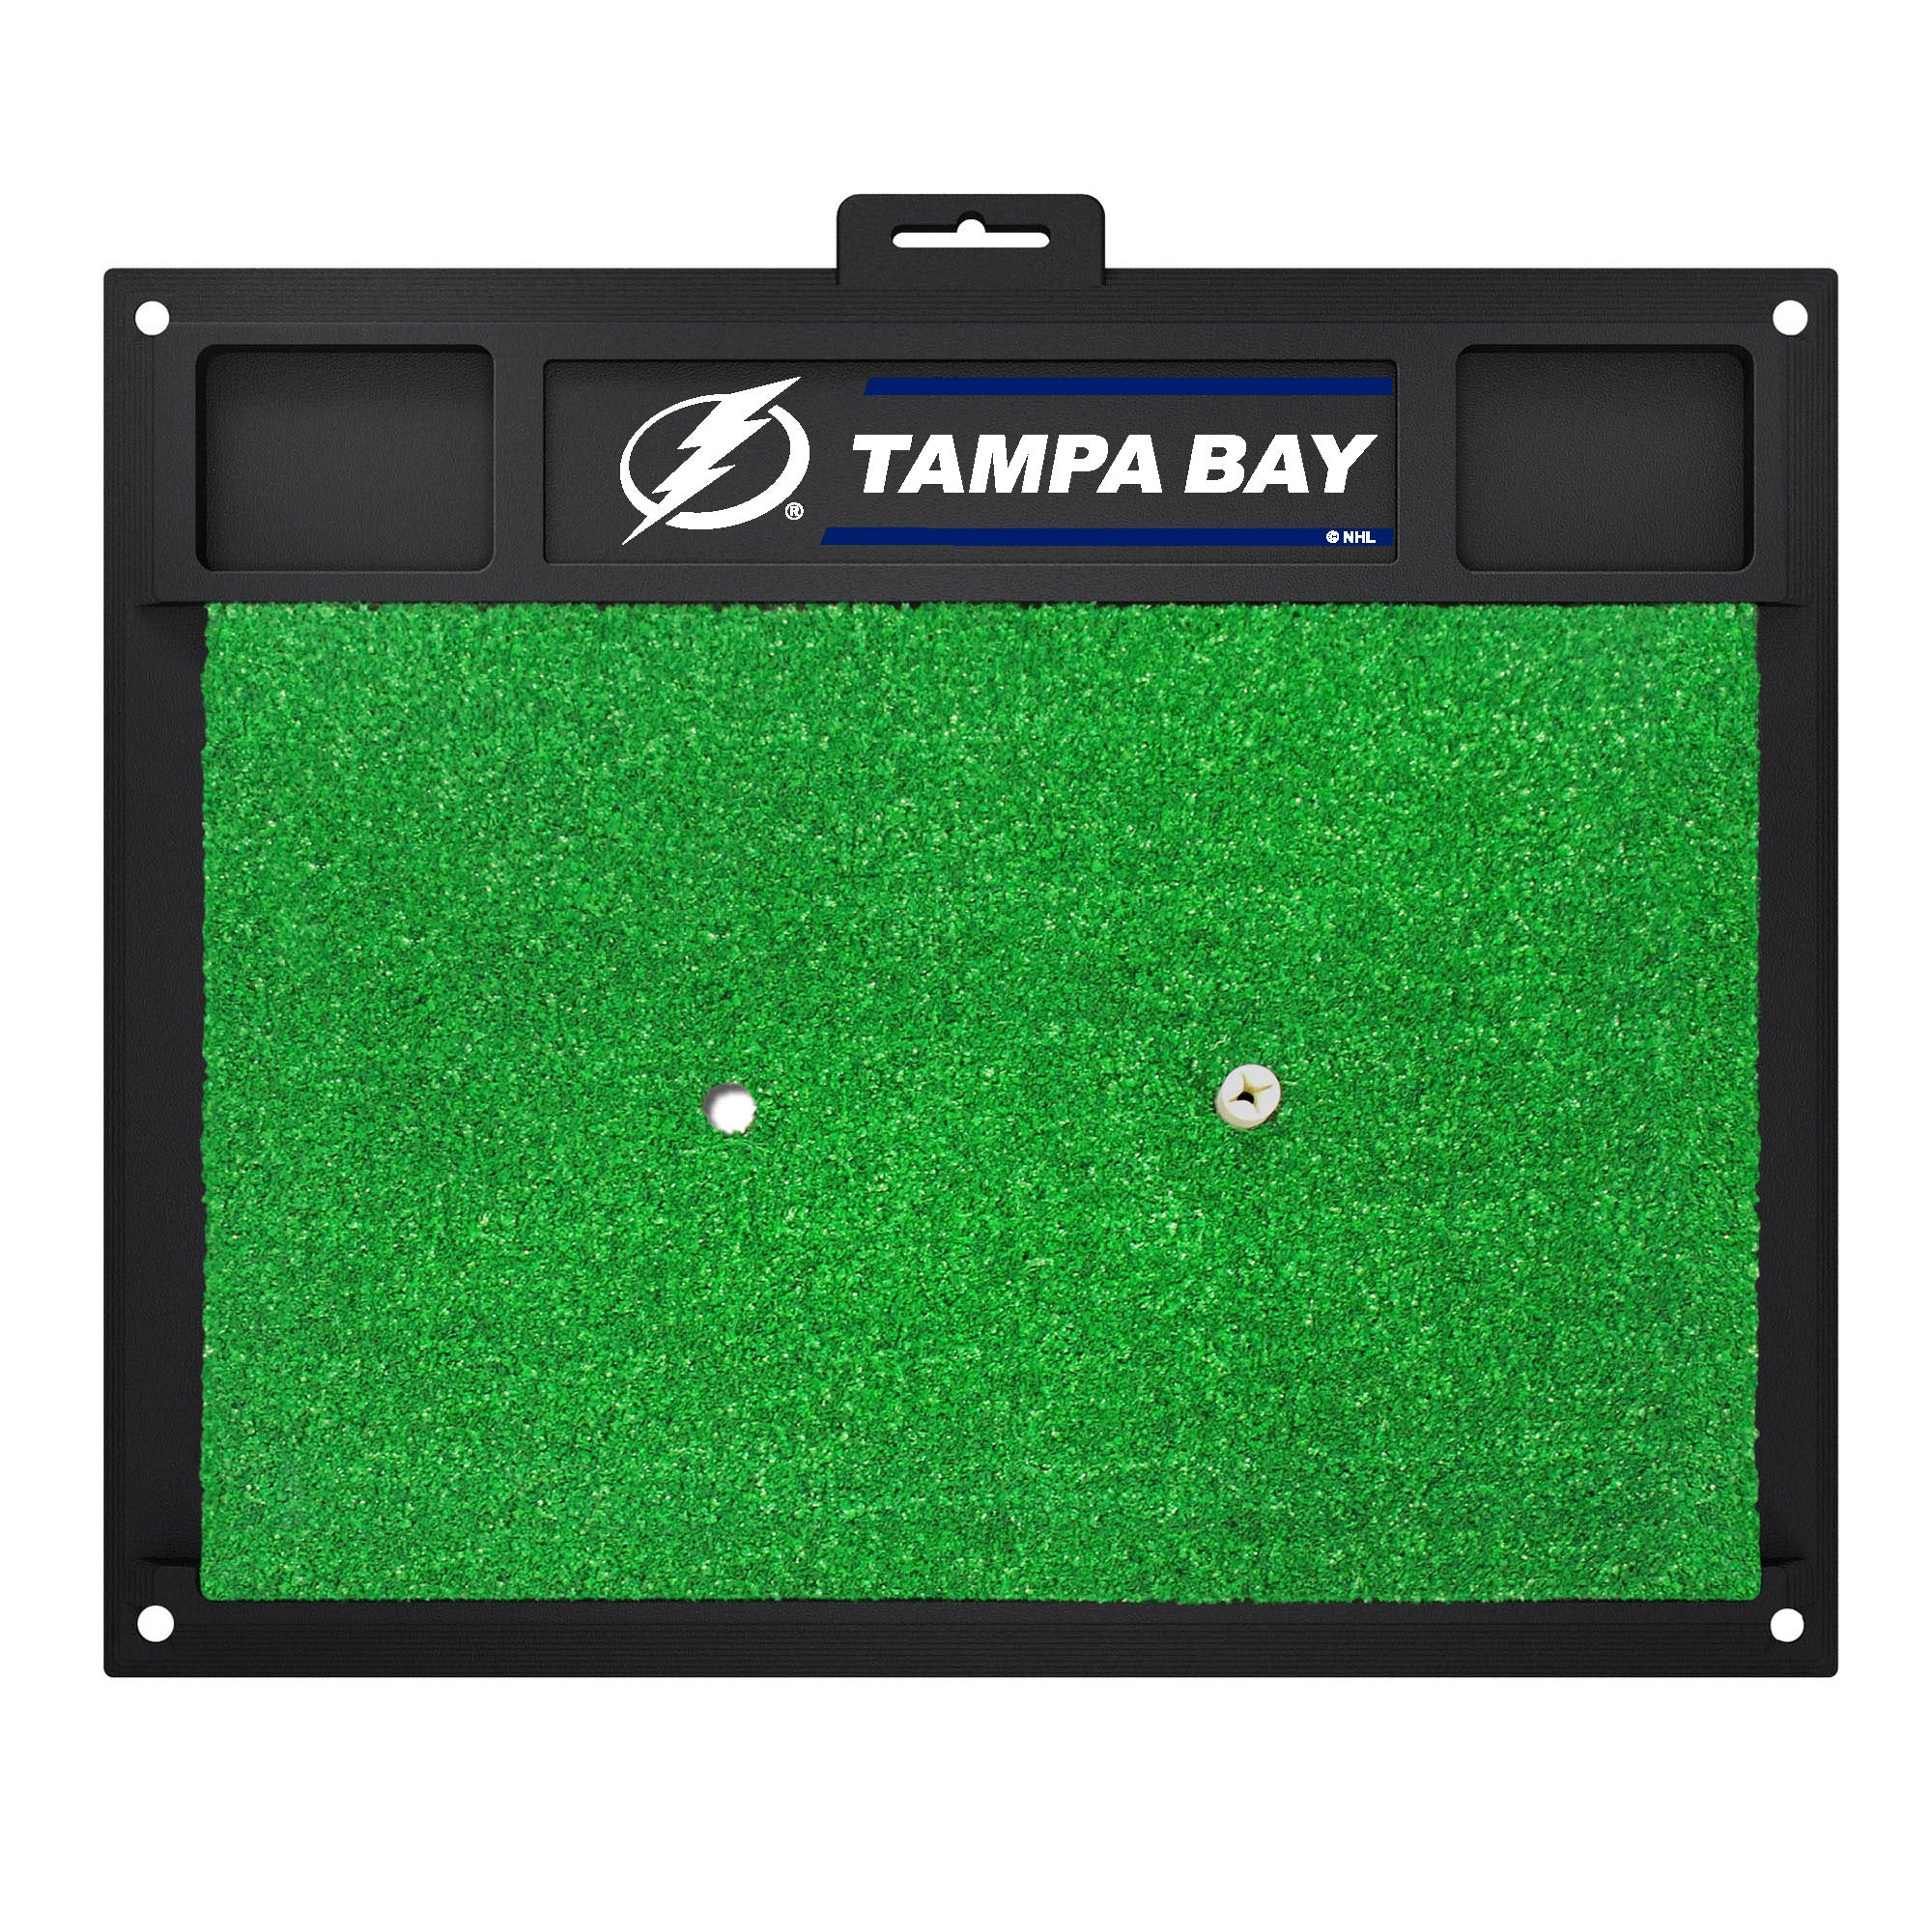 "NHL - Tampa Bay Lightning Golf Hitting Mat 20"" x 17"""